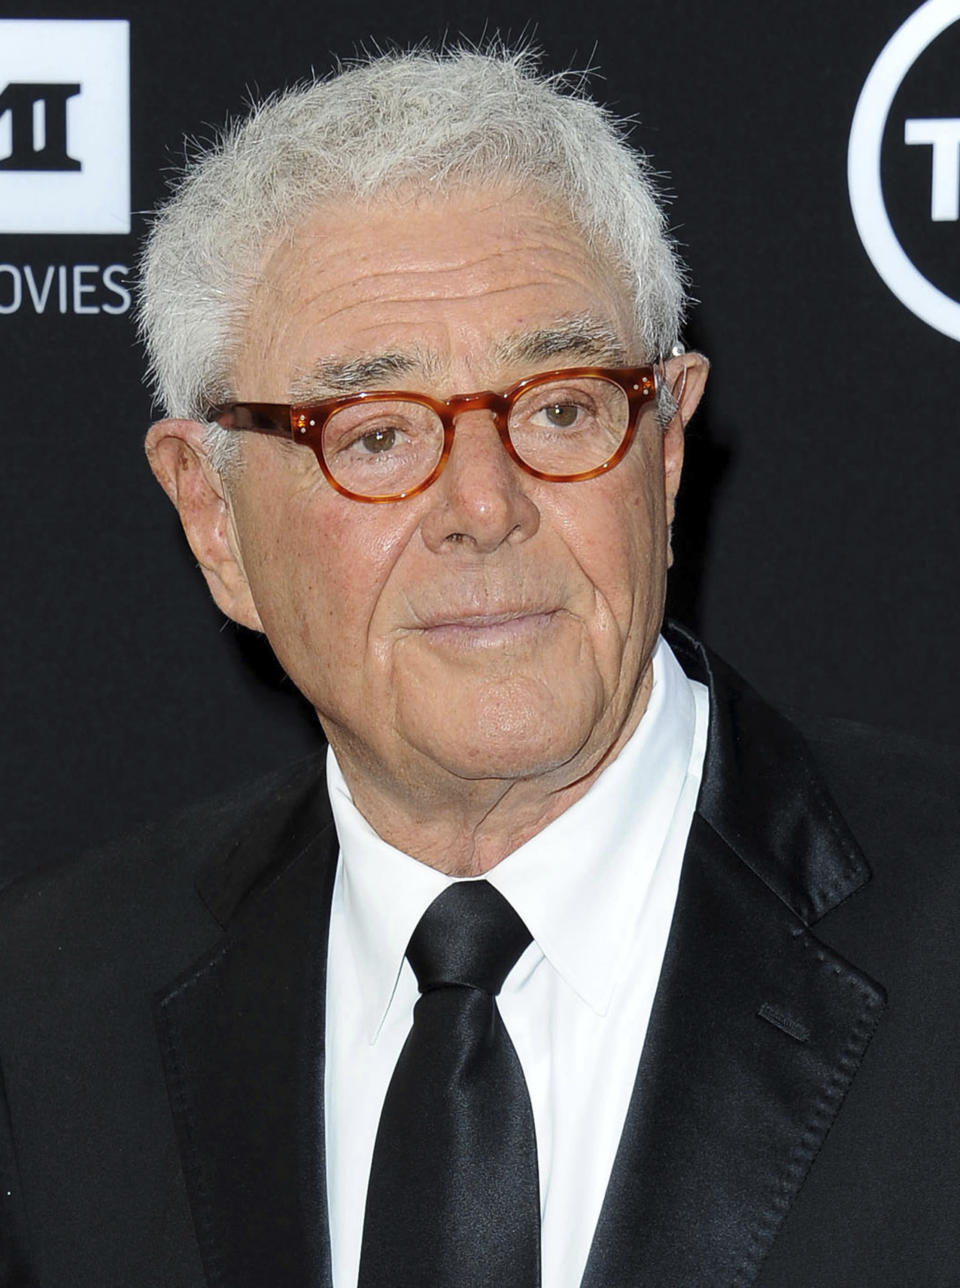 """FILE - Richard Donner arrives at the American Film Institute's 41st Lifetime Achievement Gala on June 6, 2013, in Los Angeles. The filmmaker, who helped create the modern superhero blockbuster with 1978's """"Superman"""" and mastered the buddy comedy with the """"Lethal Weapon"""" franchise, has died. He was 91. Lauren Shuler Donner, his wife and producing partner, told the Hollywood trade """"Deadline"""" that Donner died Monday, July 5, 2021. (Photo by Katy Winn/Invision/AP, File)"""